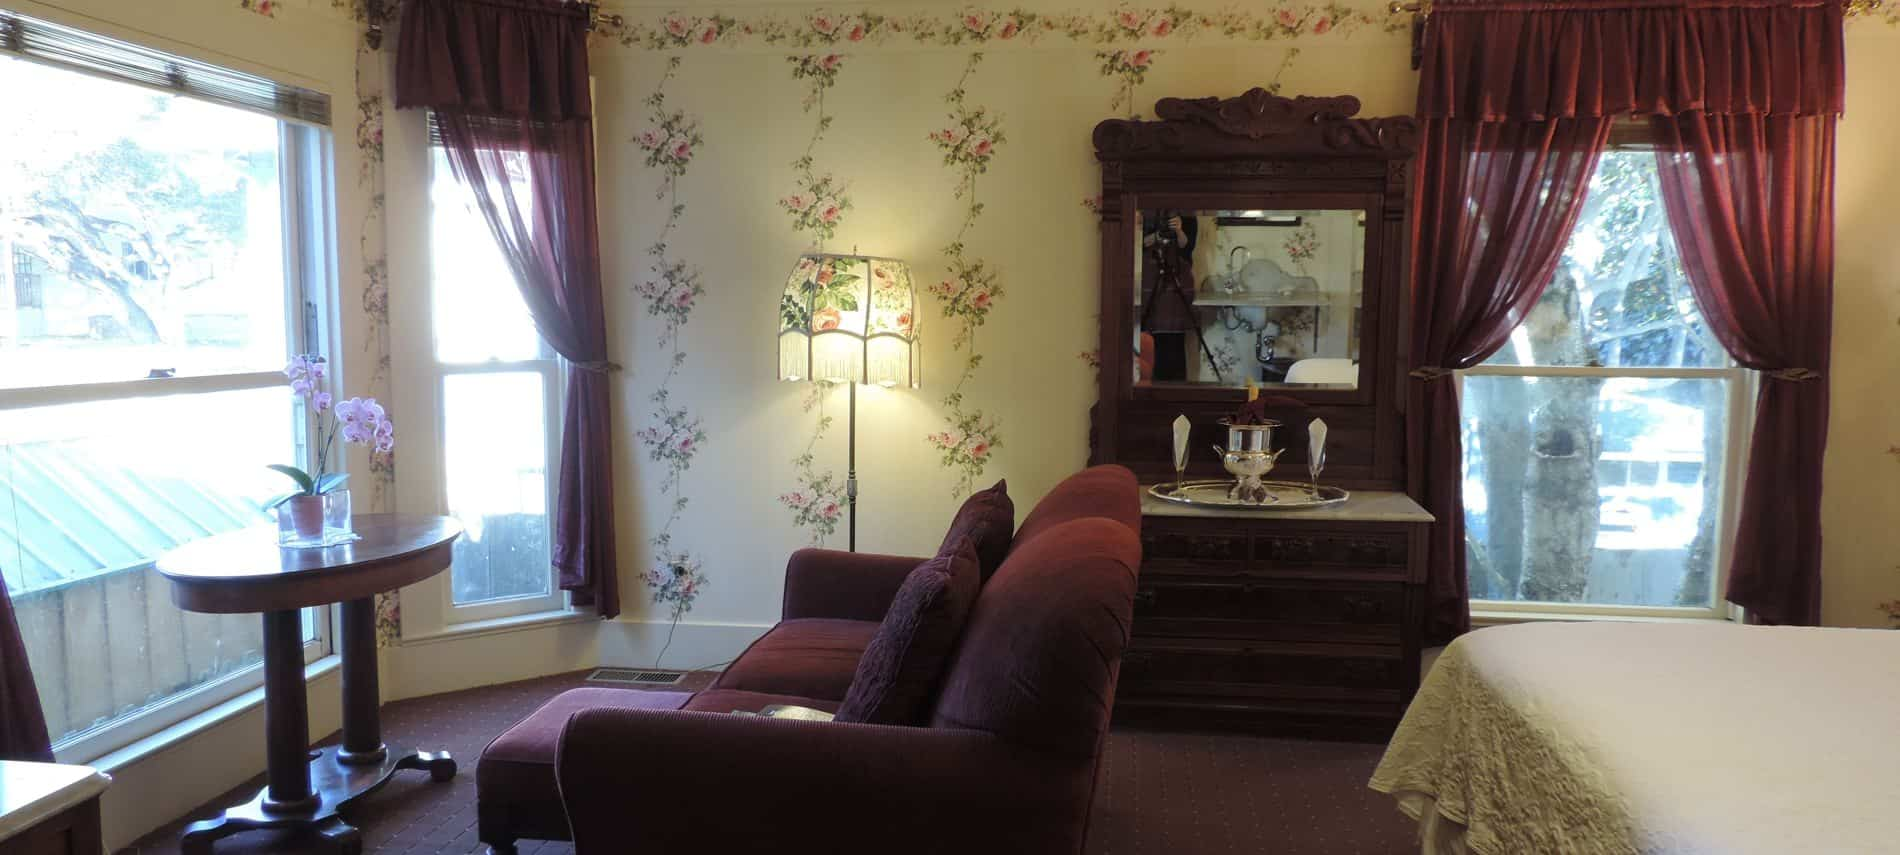 Guest room with ivory floral walls, several windows with curtains, upholstered loveseat and side table with hutch